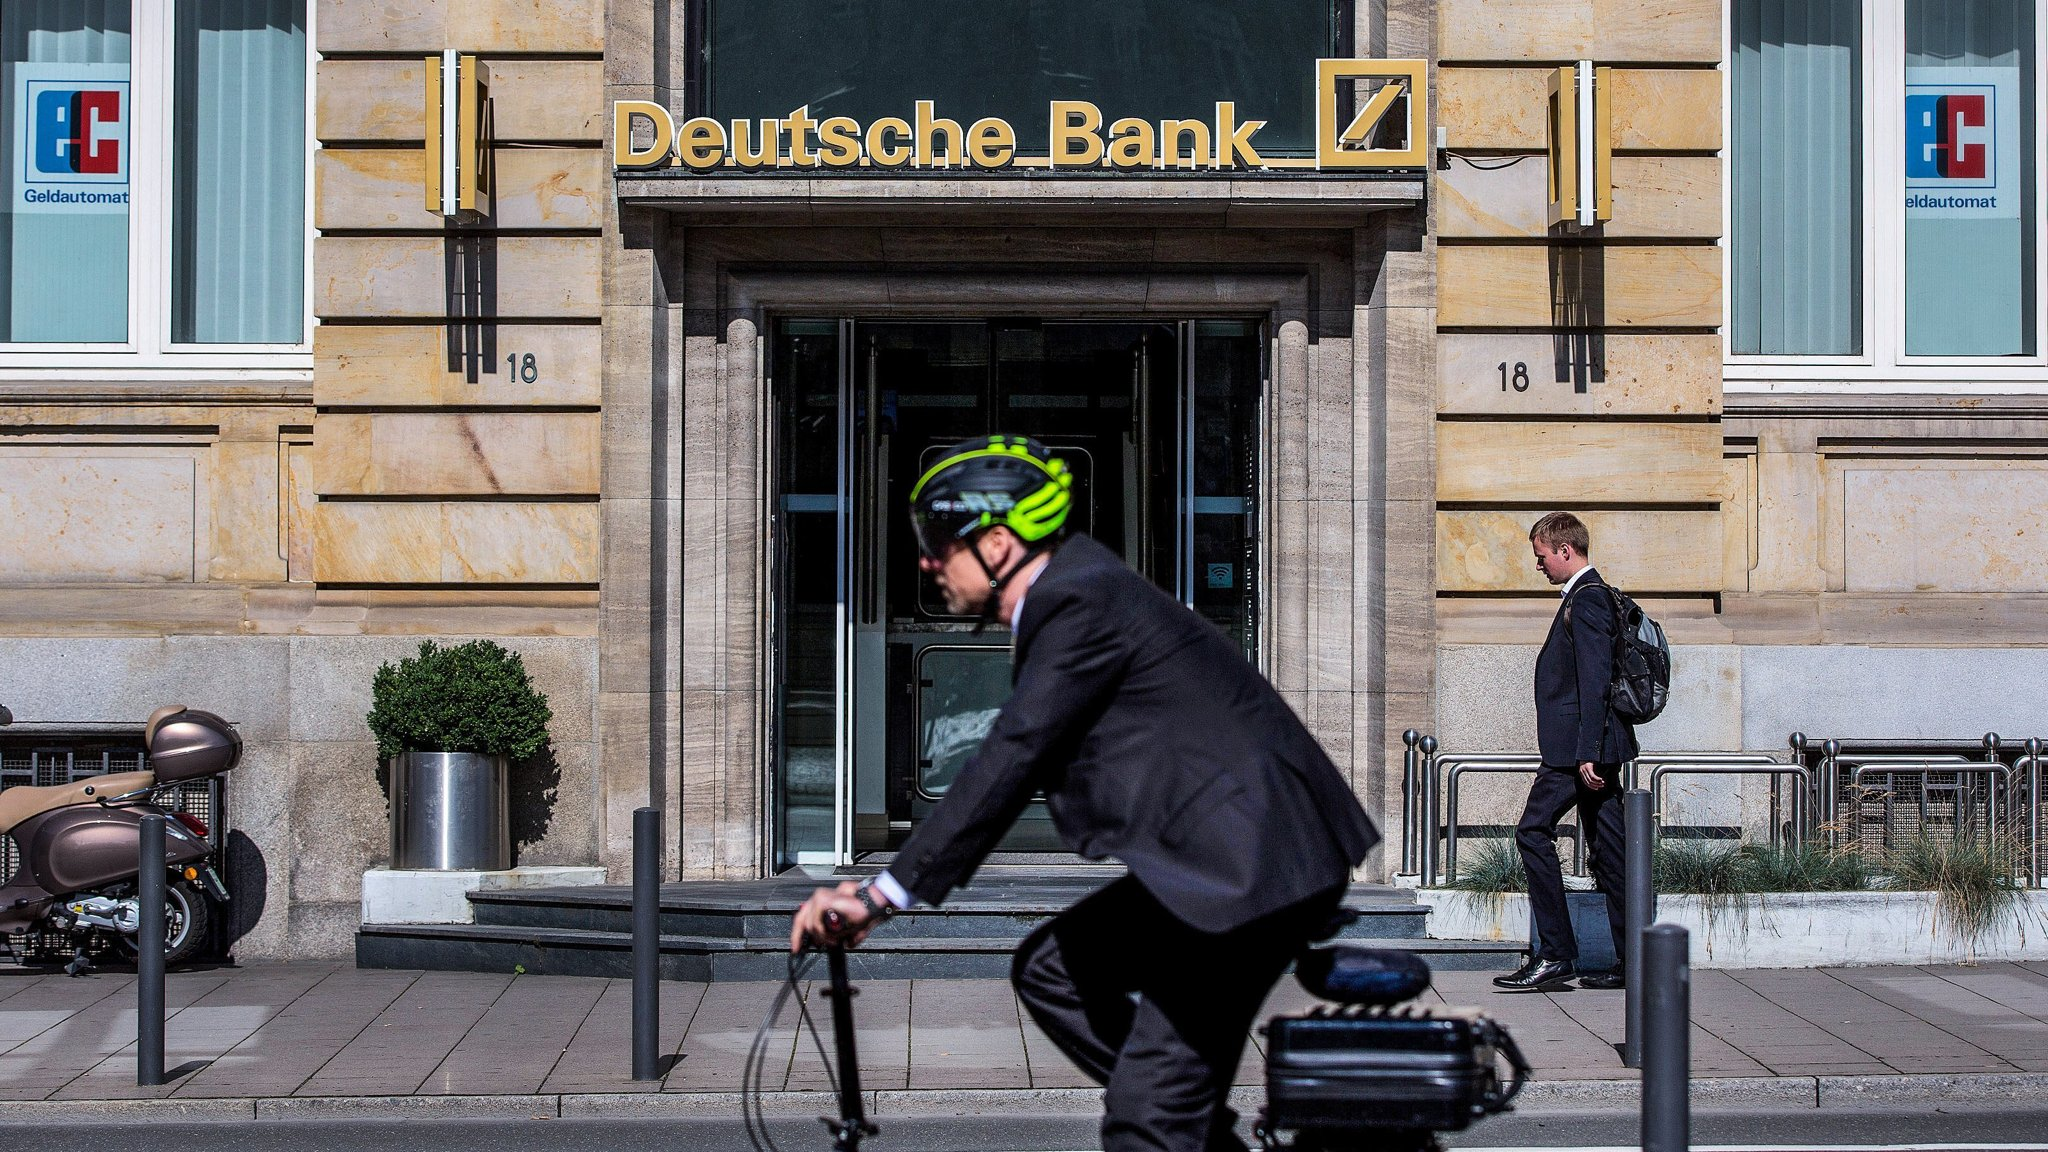 Graduate applications flood Deutsche and other banks